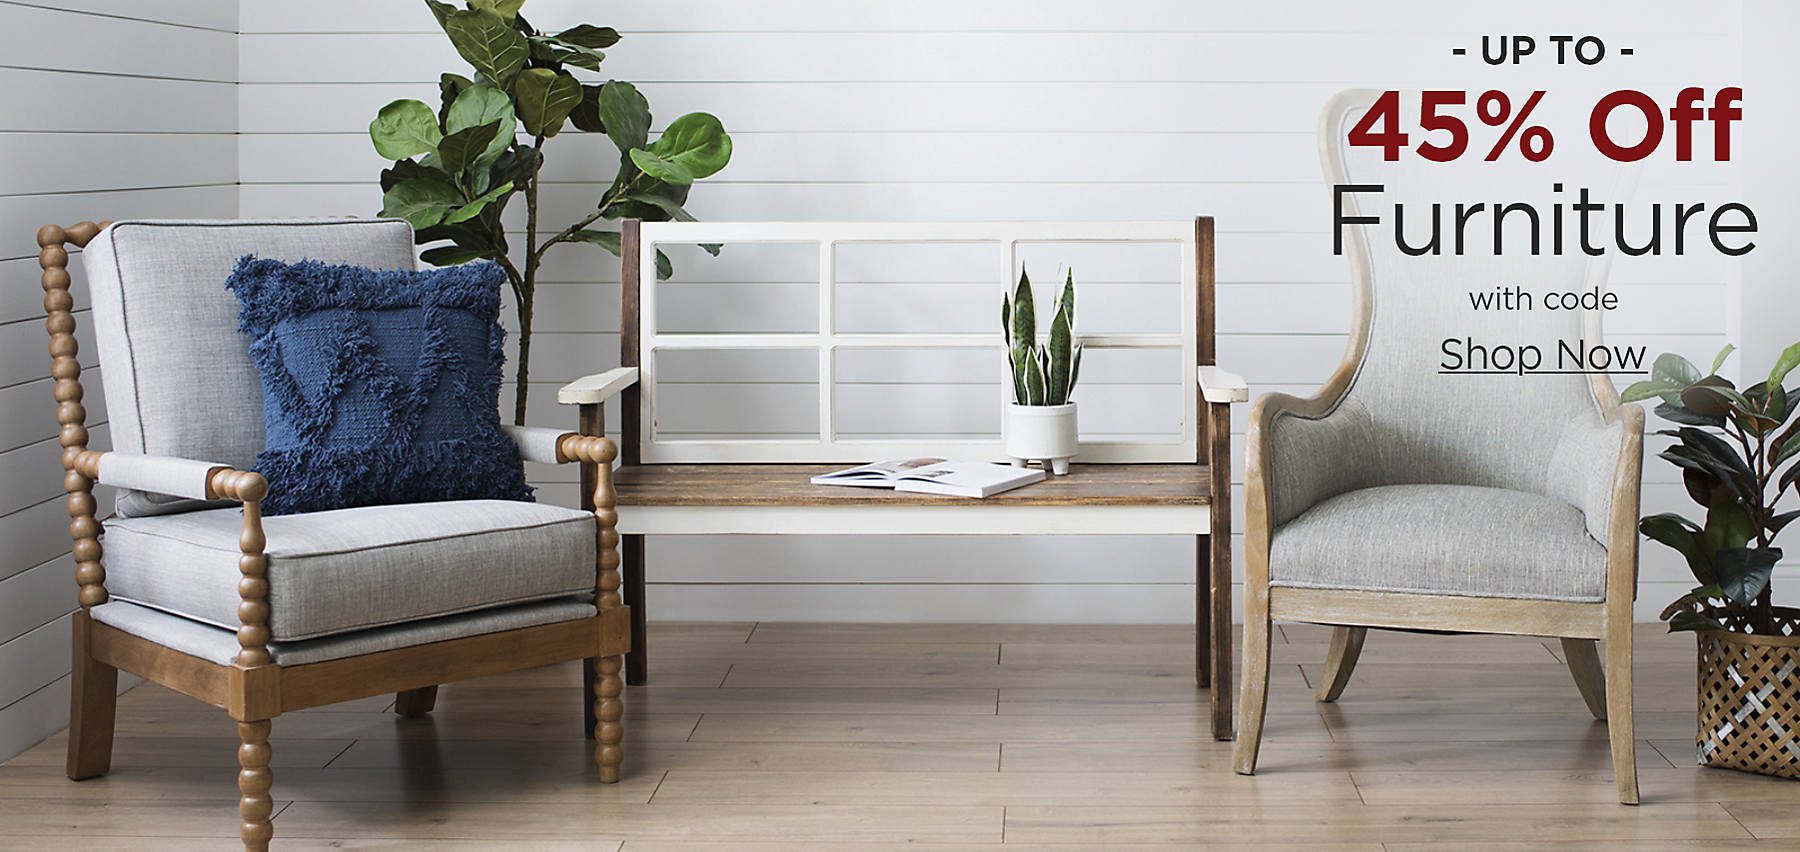 Up to 45% Off Furniture with code: COZY Shop Now